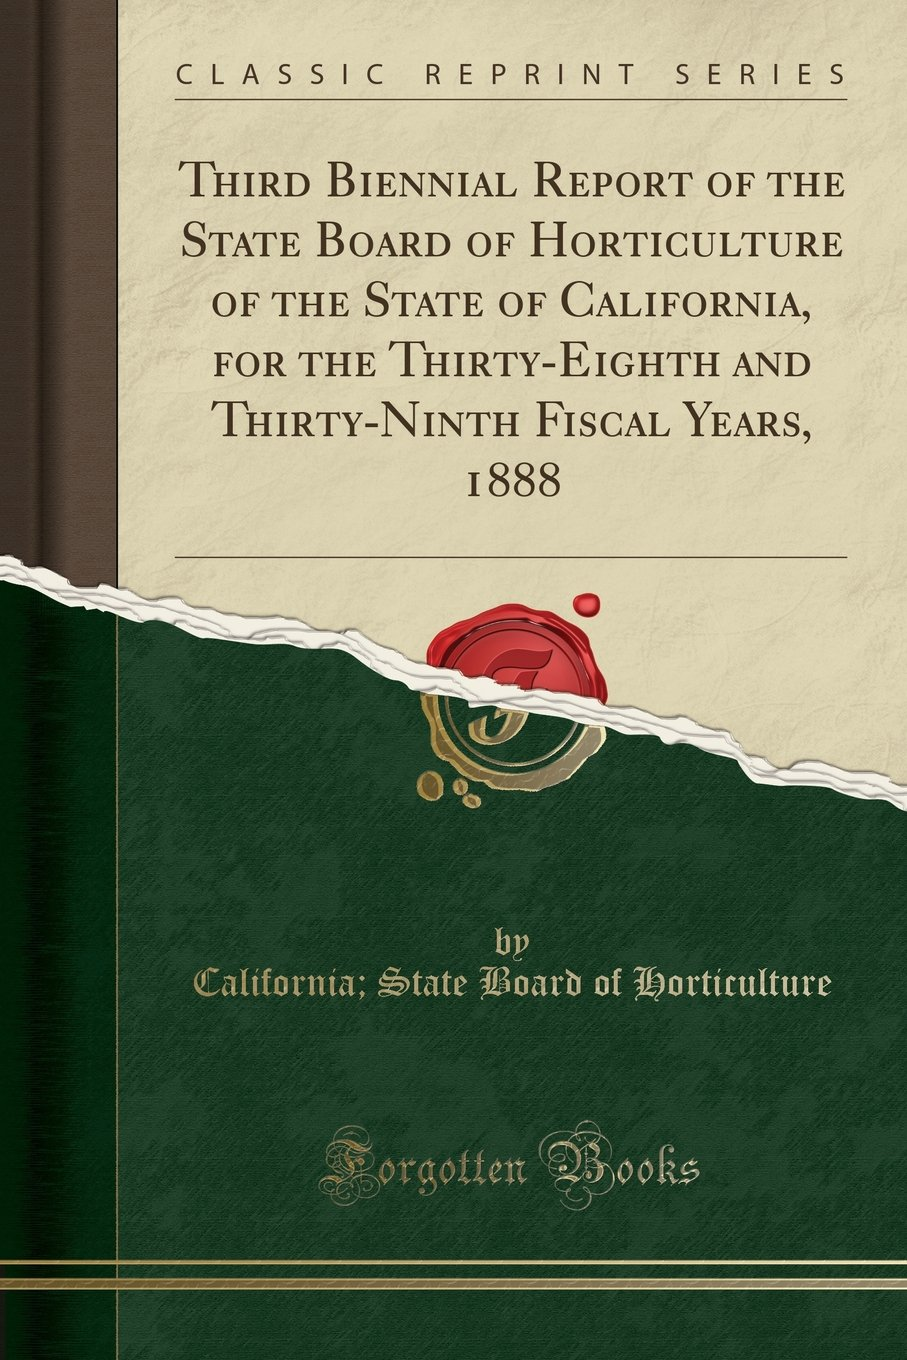 Third Biennial Report of the State Board of Horticulture of the State of California, for the Thirty-Eighth and Thirty-Ninth Fiscal Years, 1888 (Classic Reprint) pdf